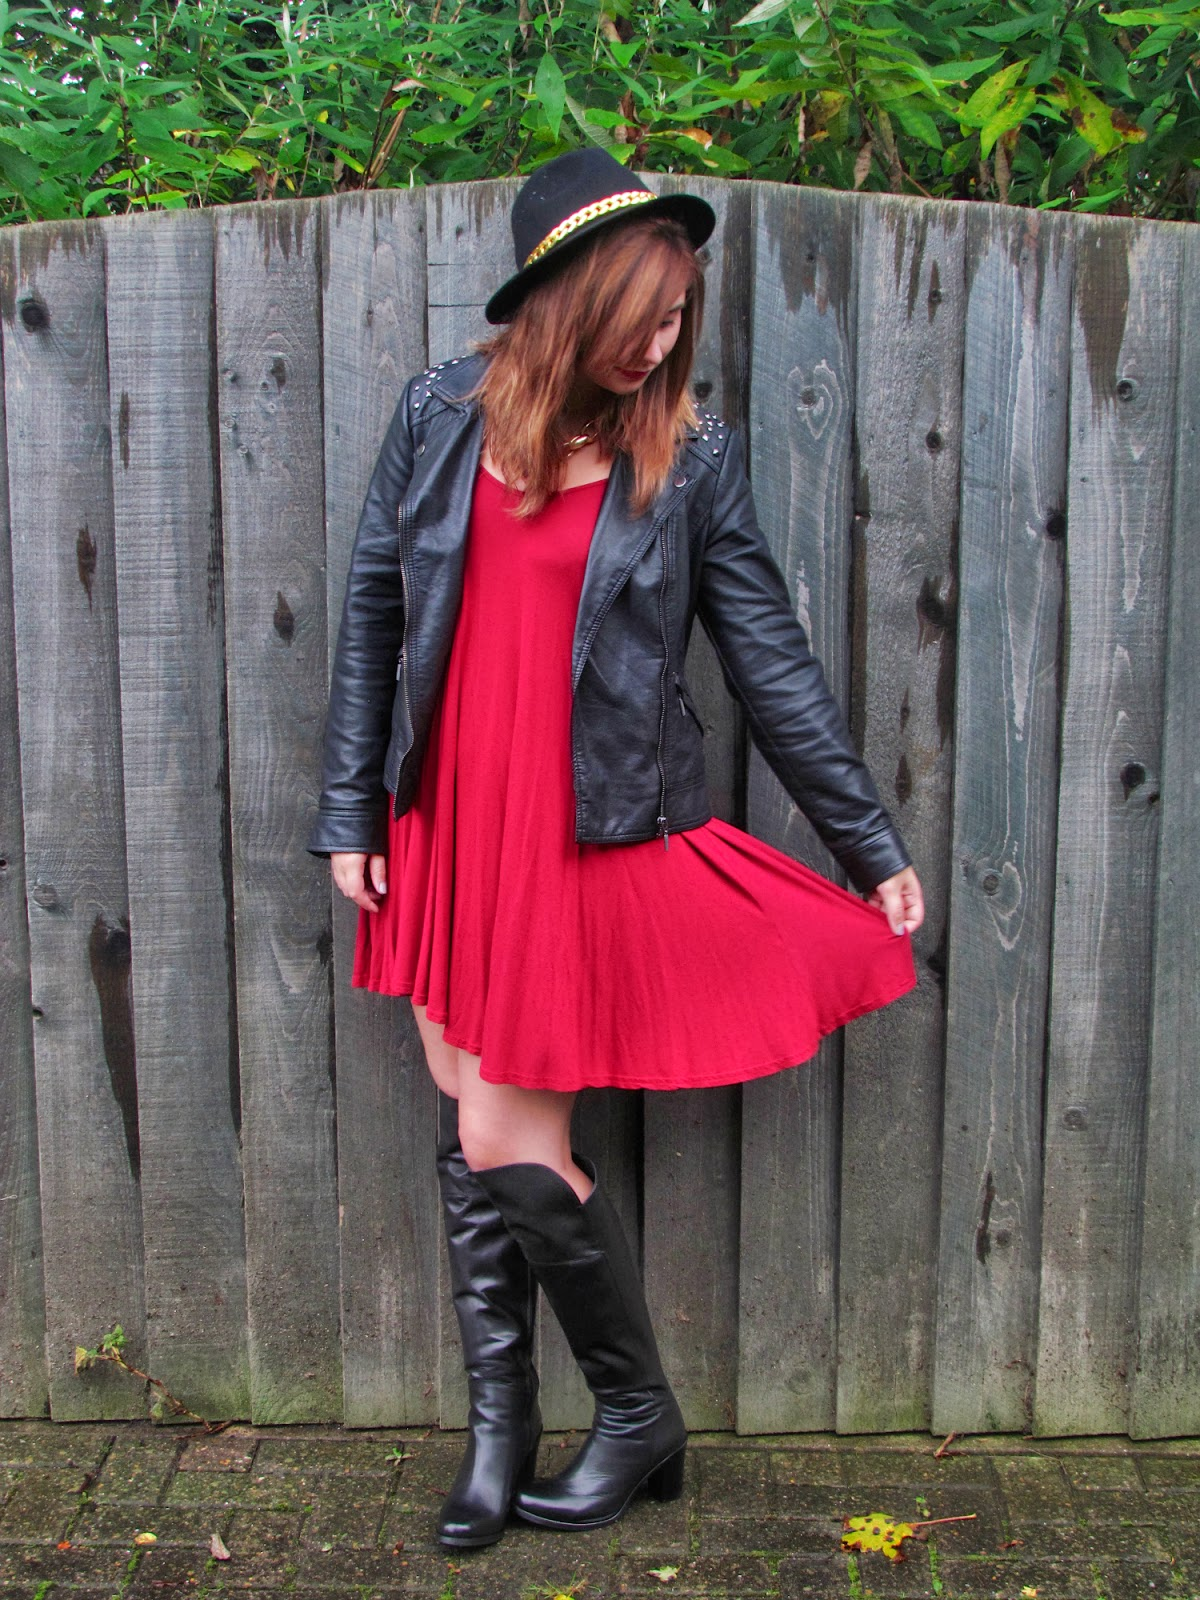 fashion-blogger-outfit-lookbook-swingdress-fedora-boots-leather